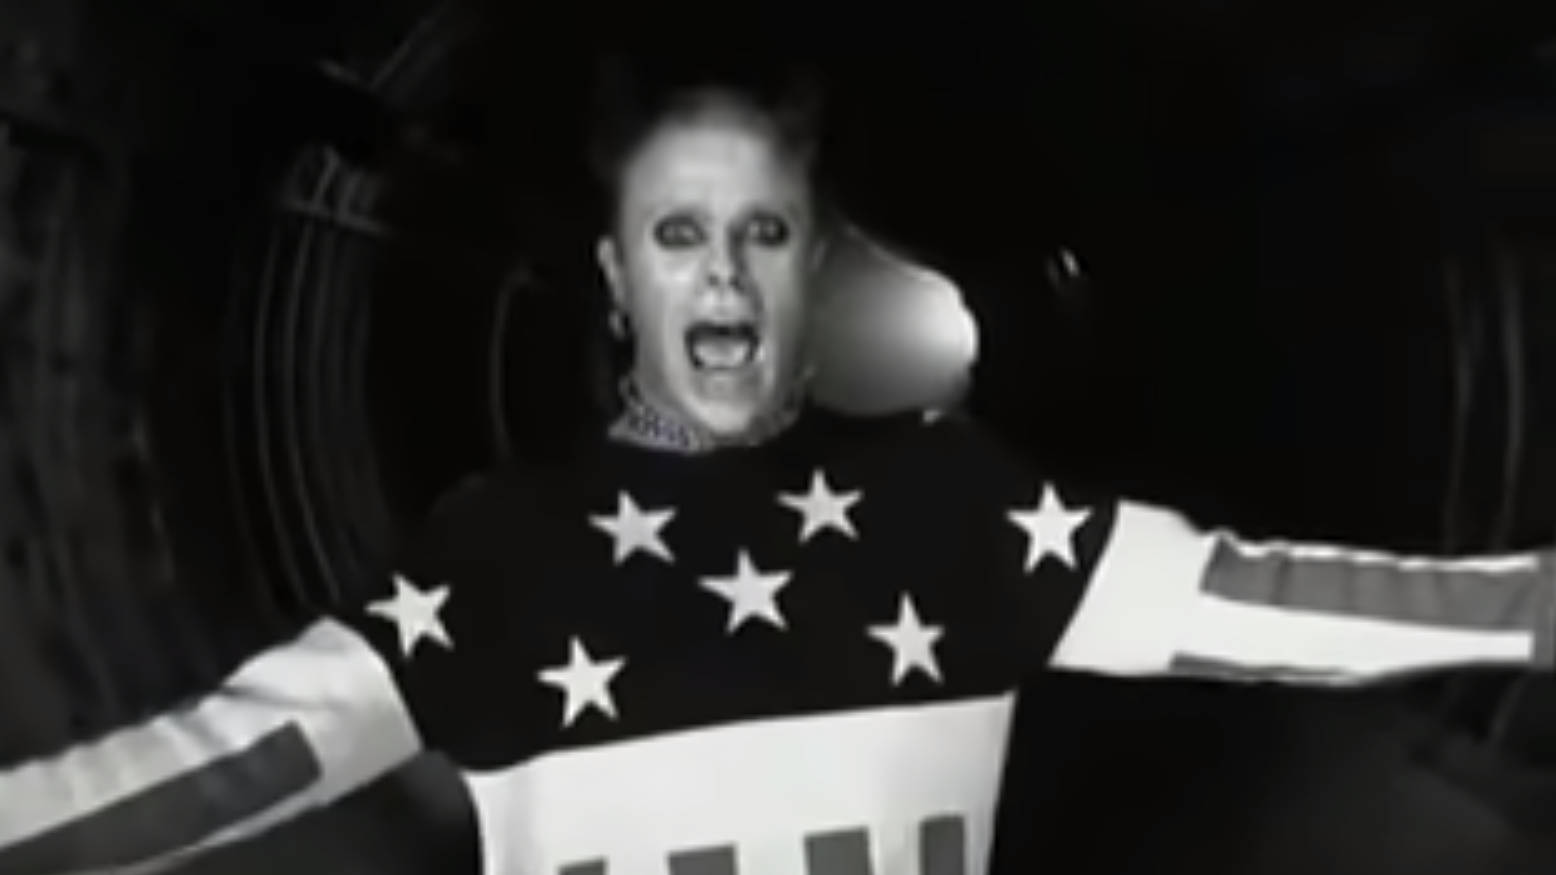 Things you might not know about The Prodigy's Firestarter and its iconic video starring Keith Flint